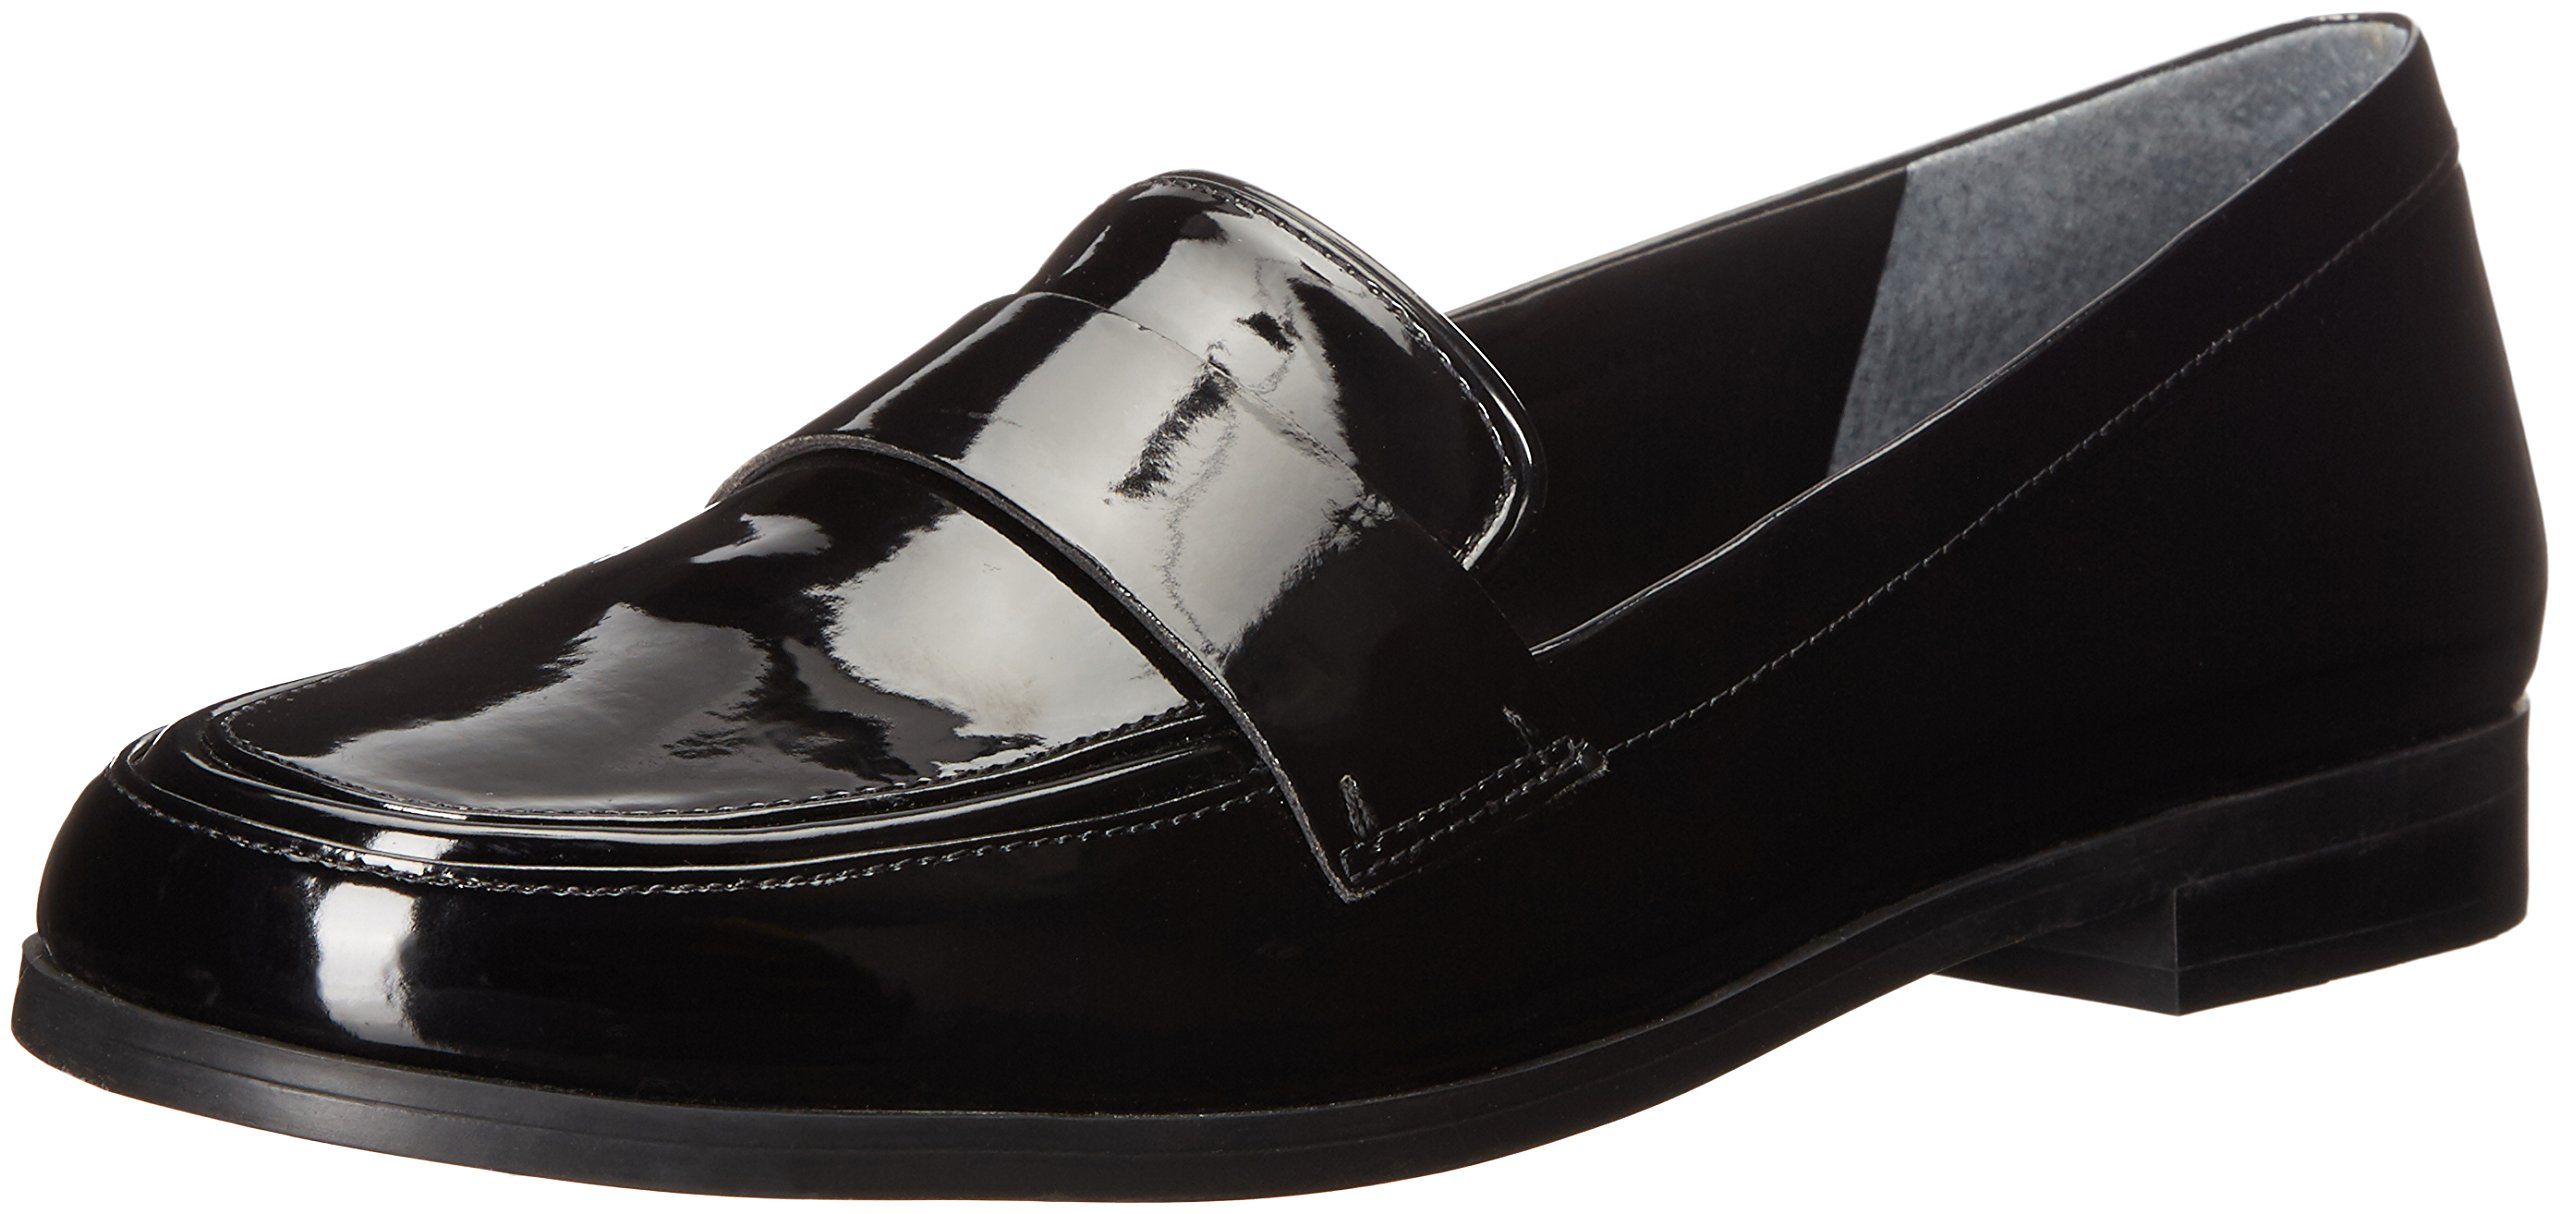 Franco Sarto Women's Valera Slip-on Loafer, Black/Black, 4.5 M US